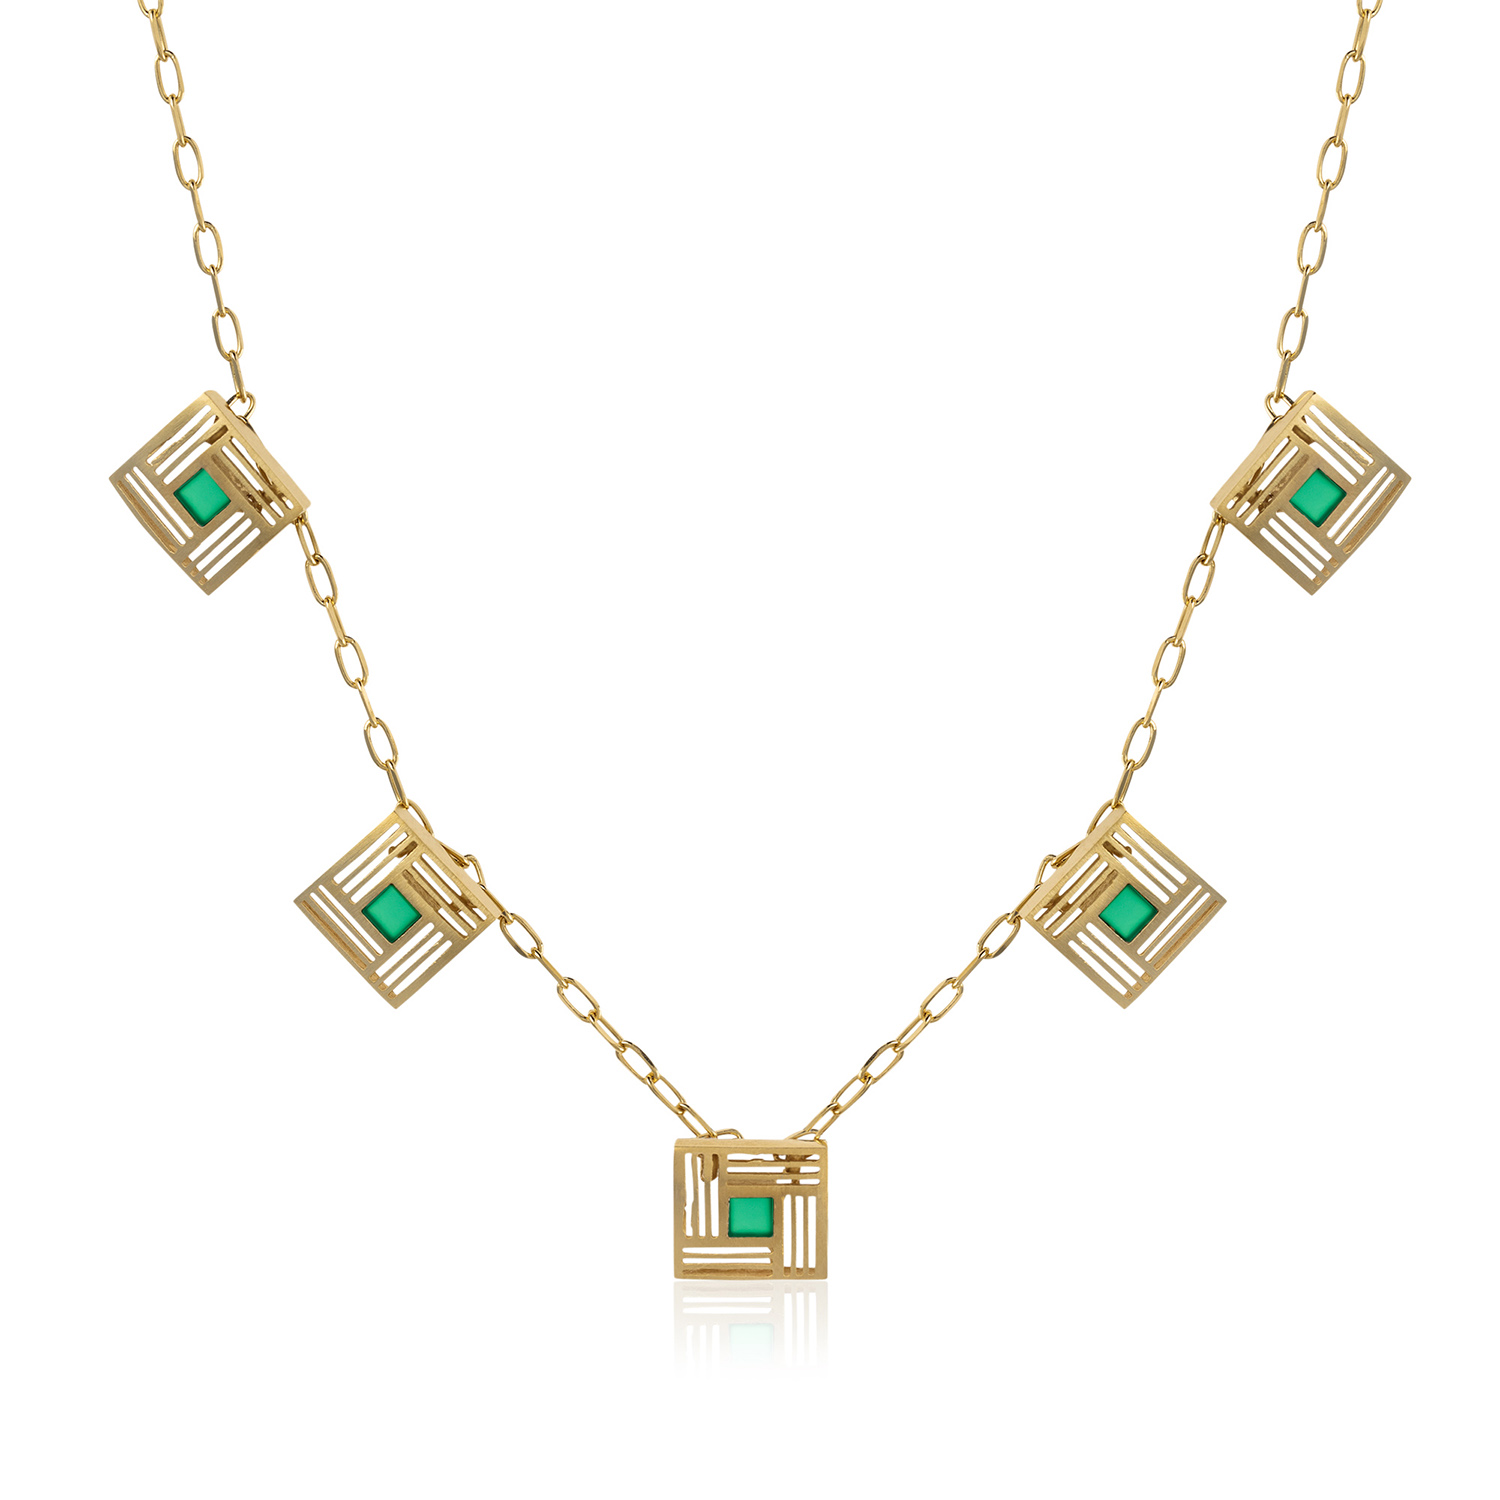 5 pieces Llum necklace